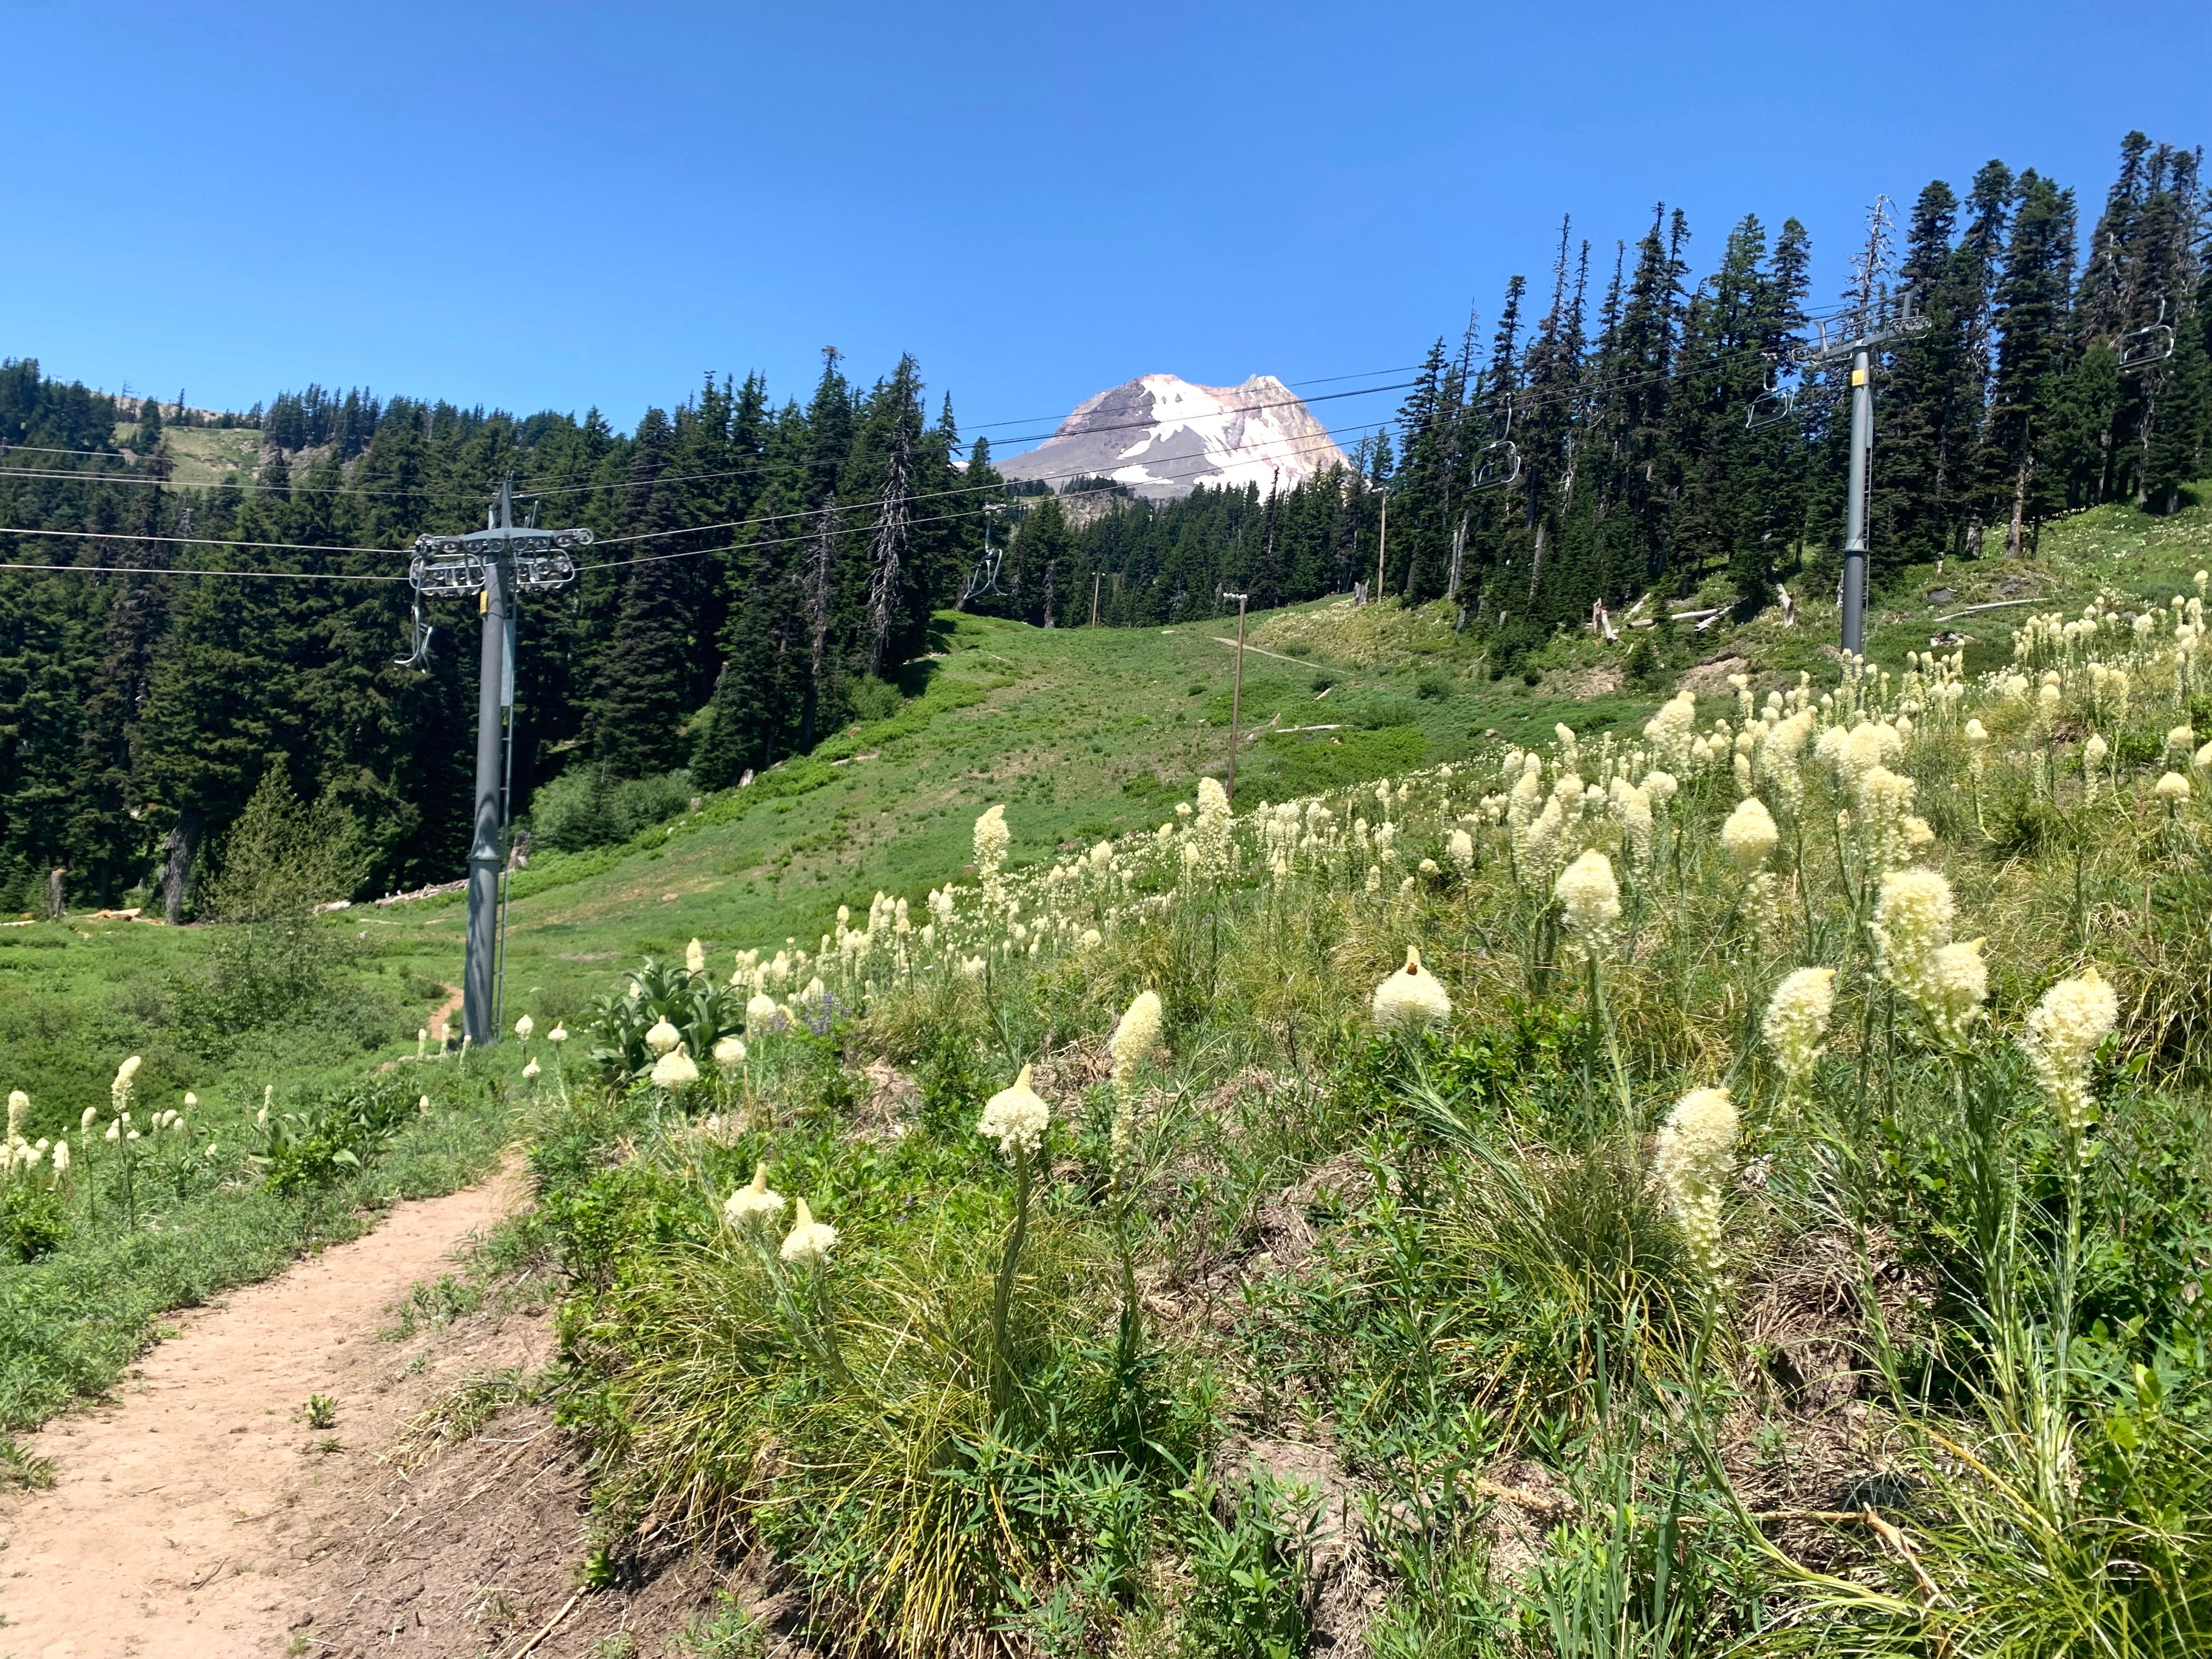 Explore Oregon Podcast: Chairlift hiking on Mount Hood, and quiet places to camp and hike